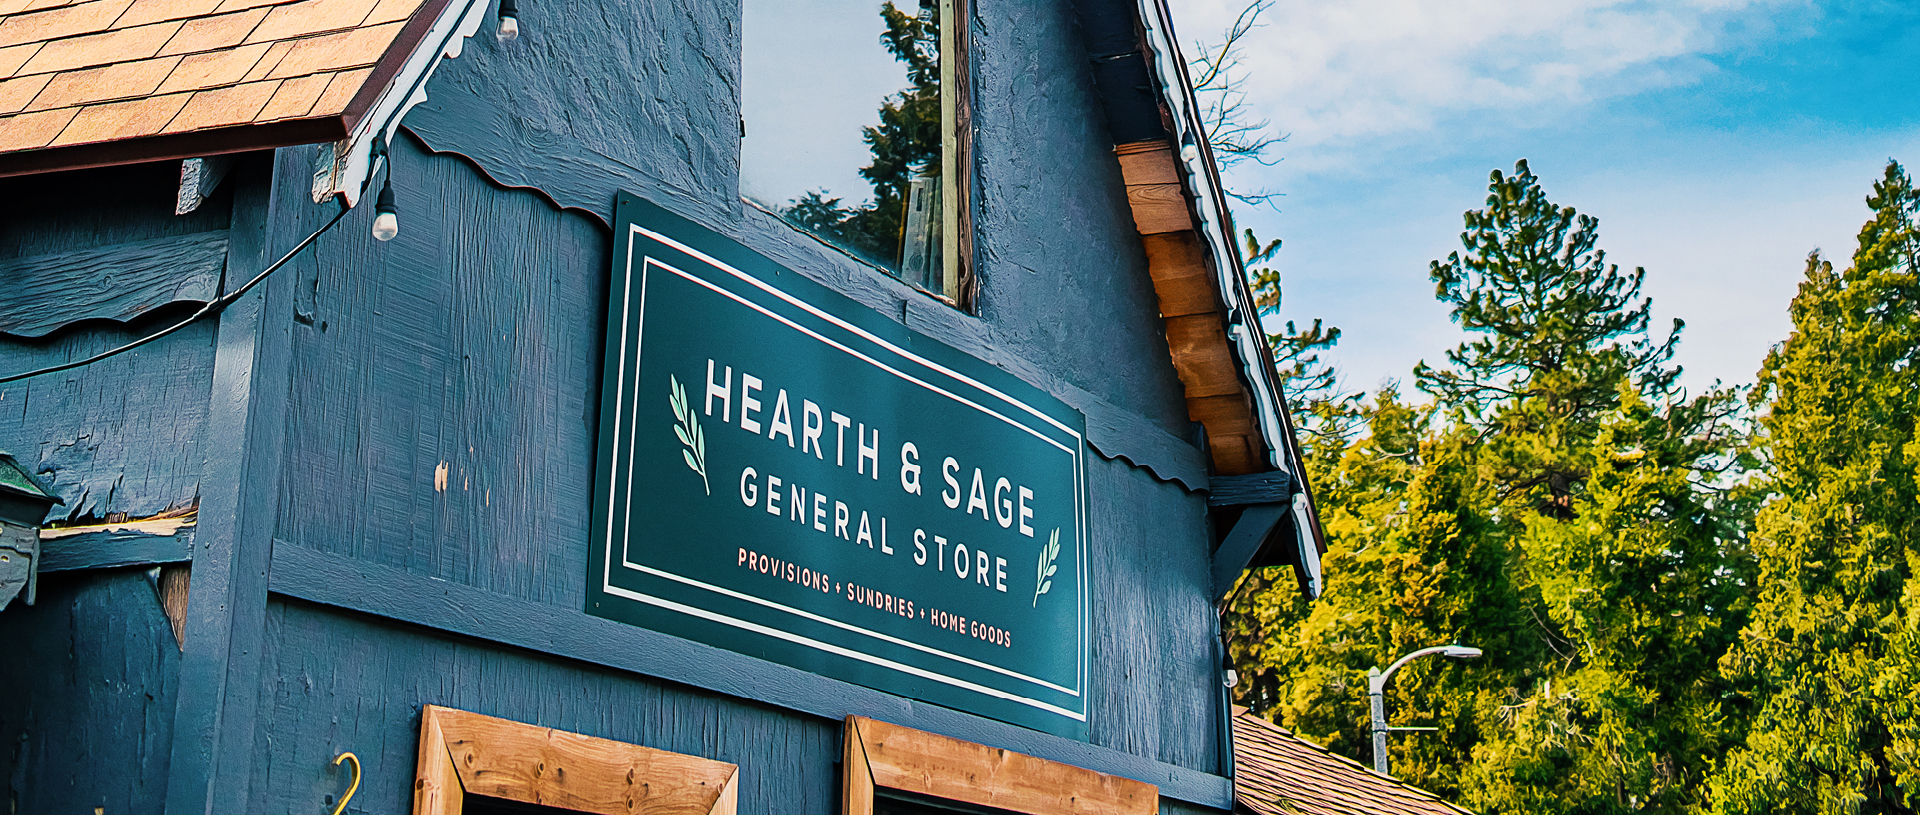 hearth and sage general store